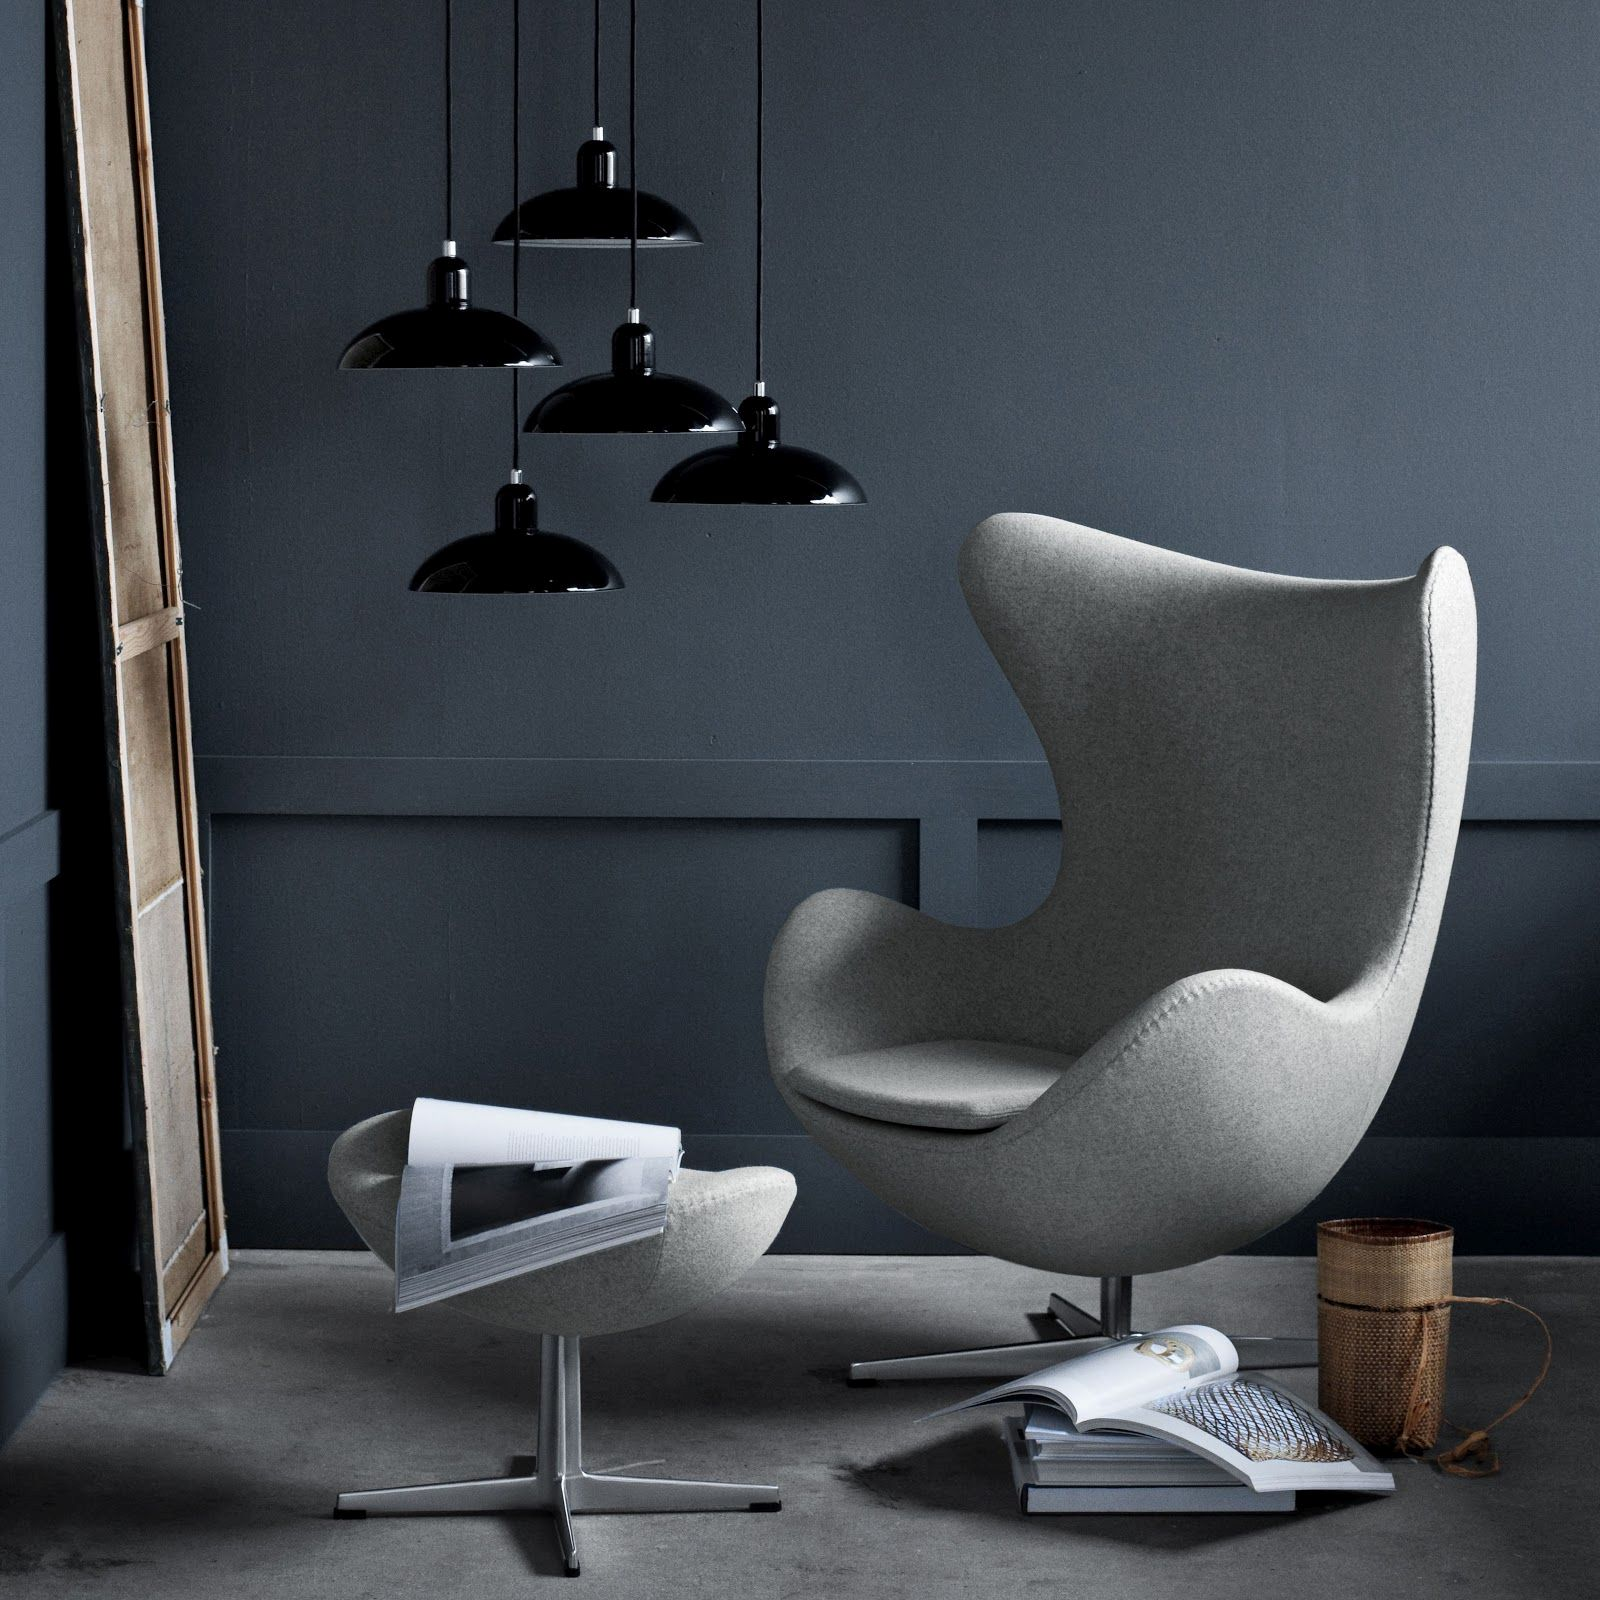 egg chair arne jacobsen (5)